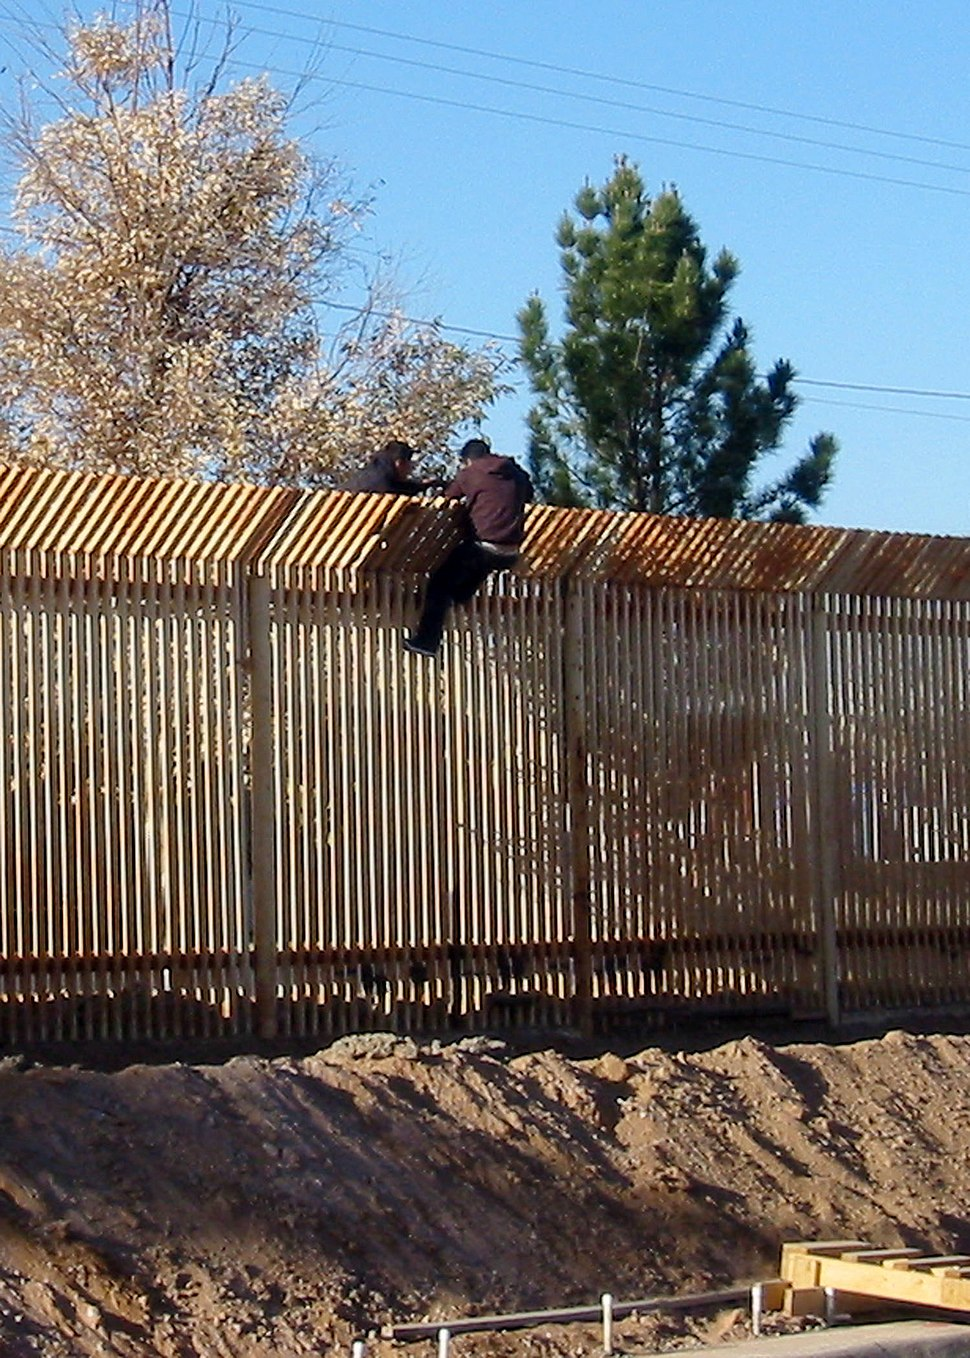 US Navy 090317-N-5253T-016 Two men scale the border fence into Mexico a few hundred yards away from where Seabees from Naval Mobile Construction Battalions (NMCB) 133 and NMCB-14 are building a 1,500 foot-long concrete-lined dr